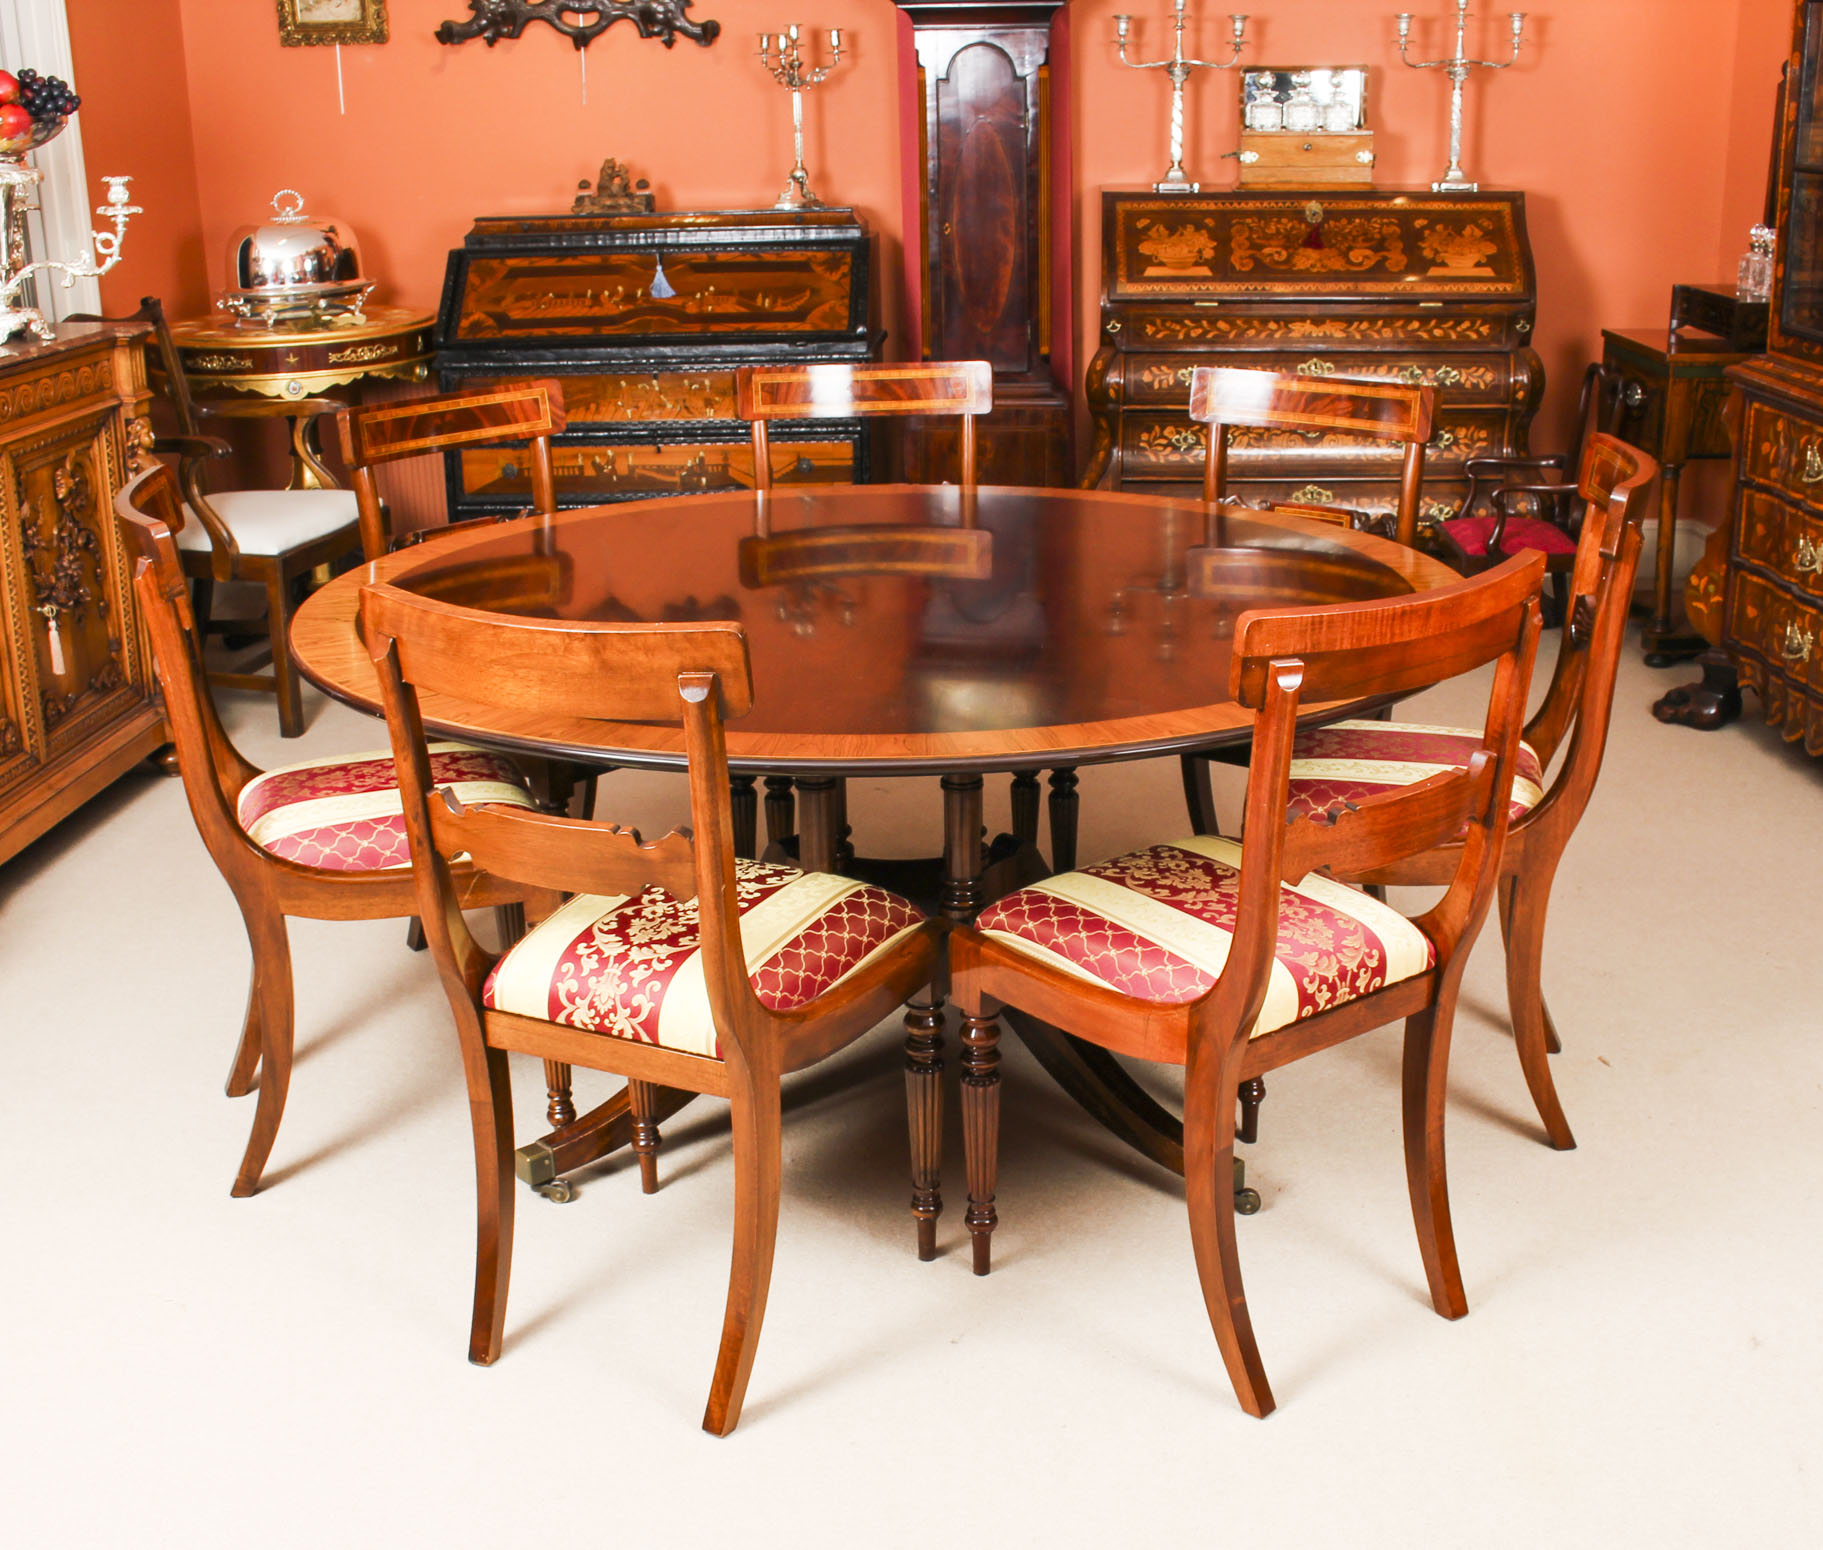 Vintage 5ft 6 Round Table By Millwood Dining Chairs 20th Century